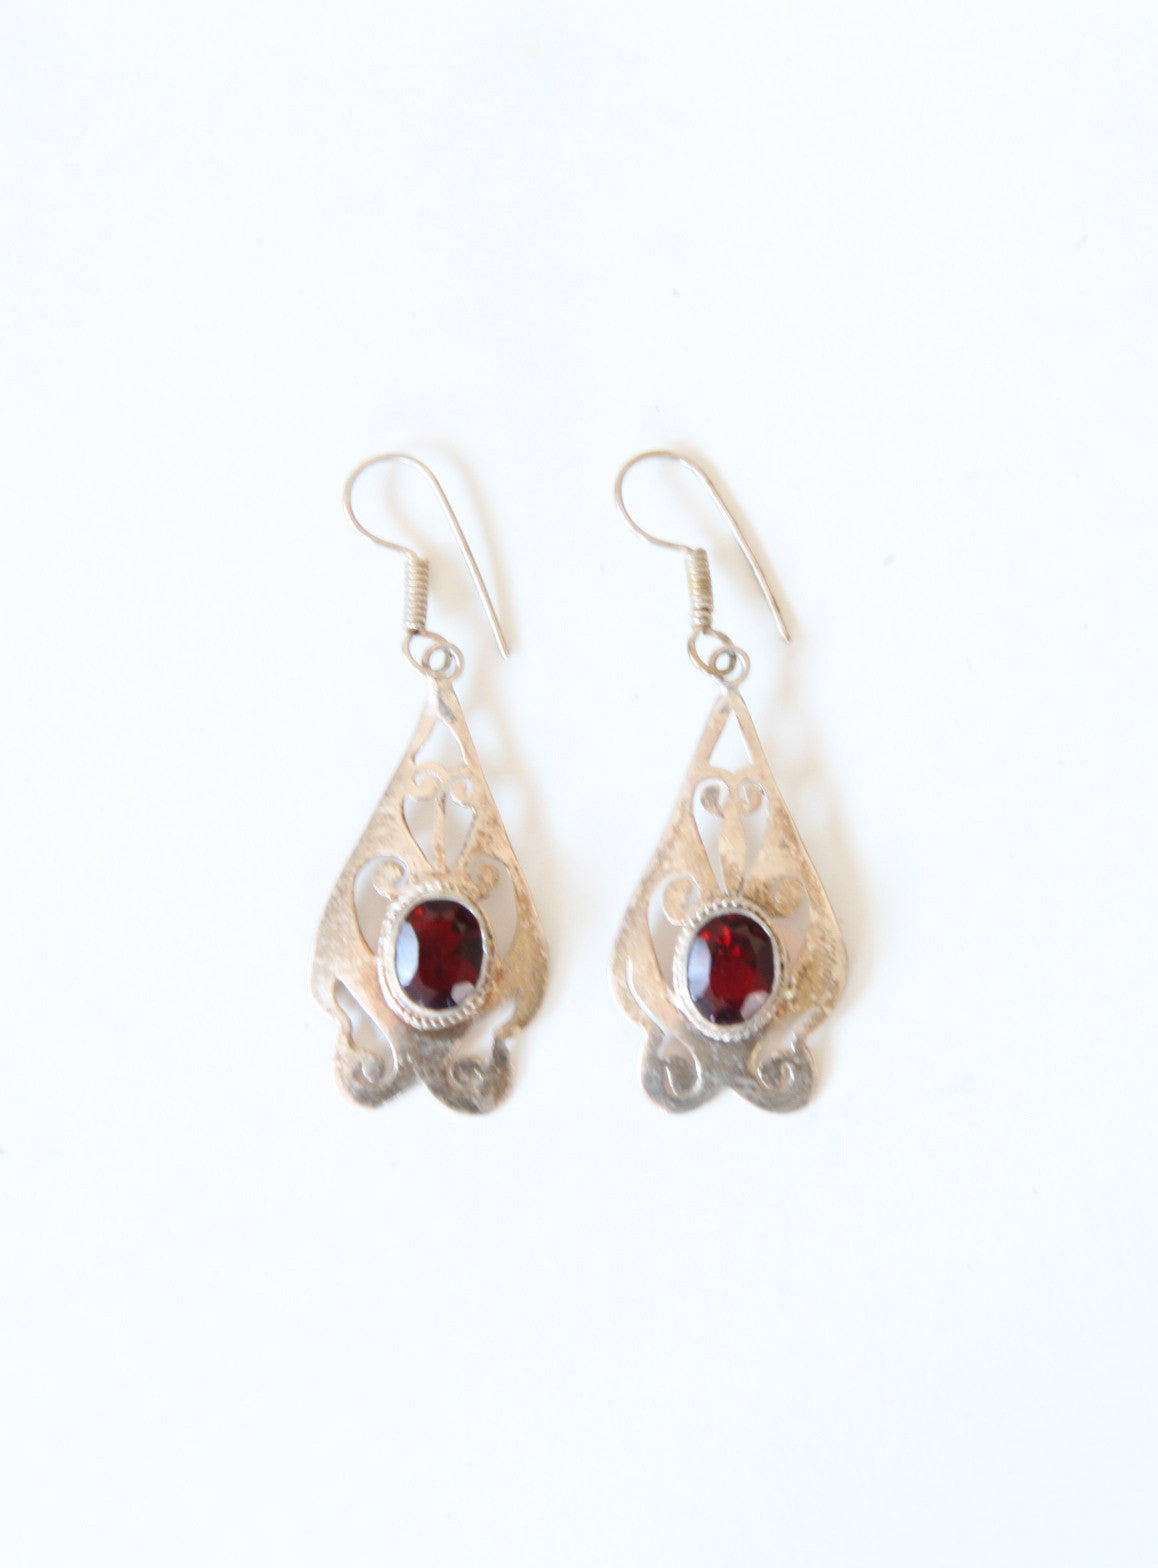 Vintage Sterling & Garnet Earrings